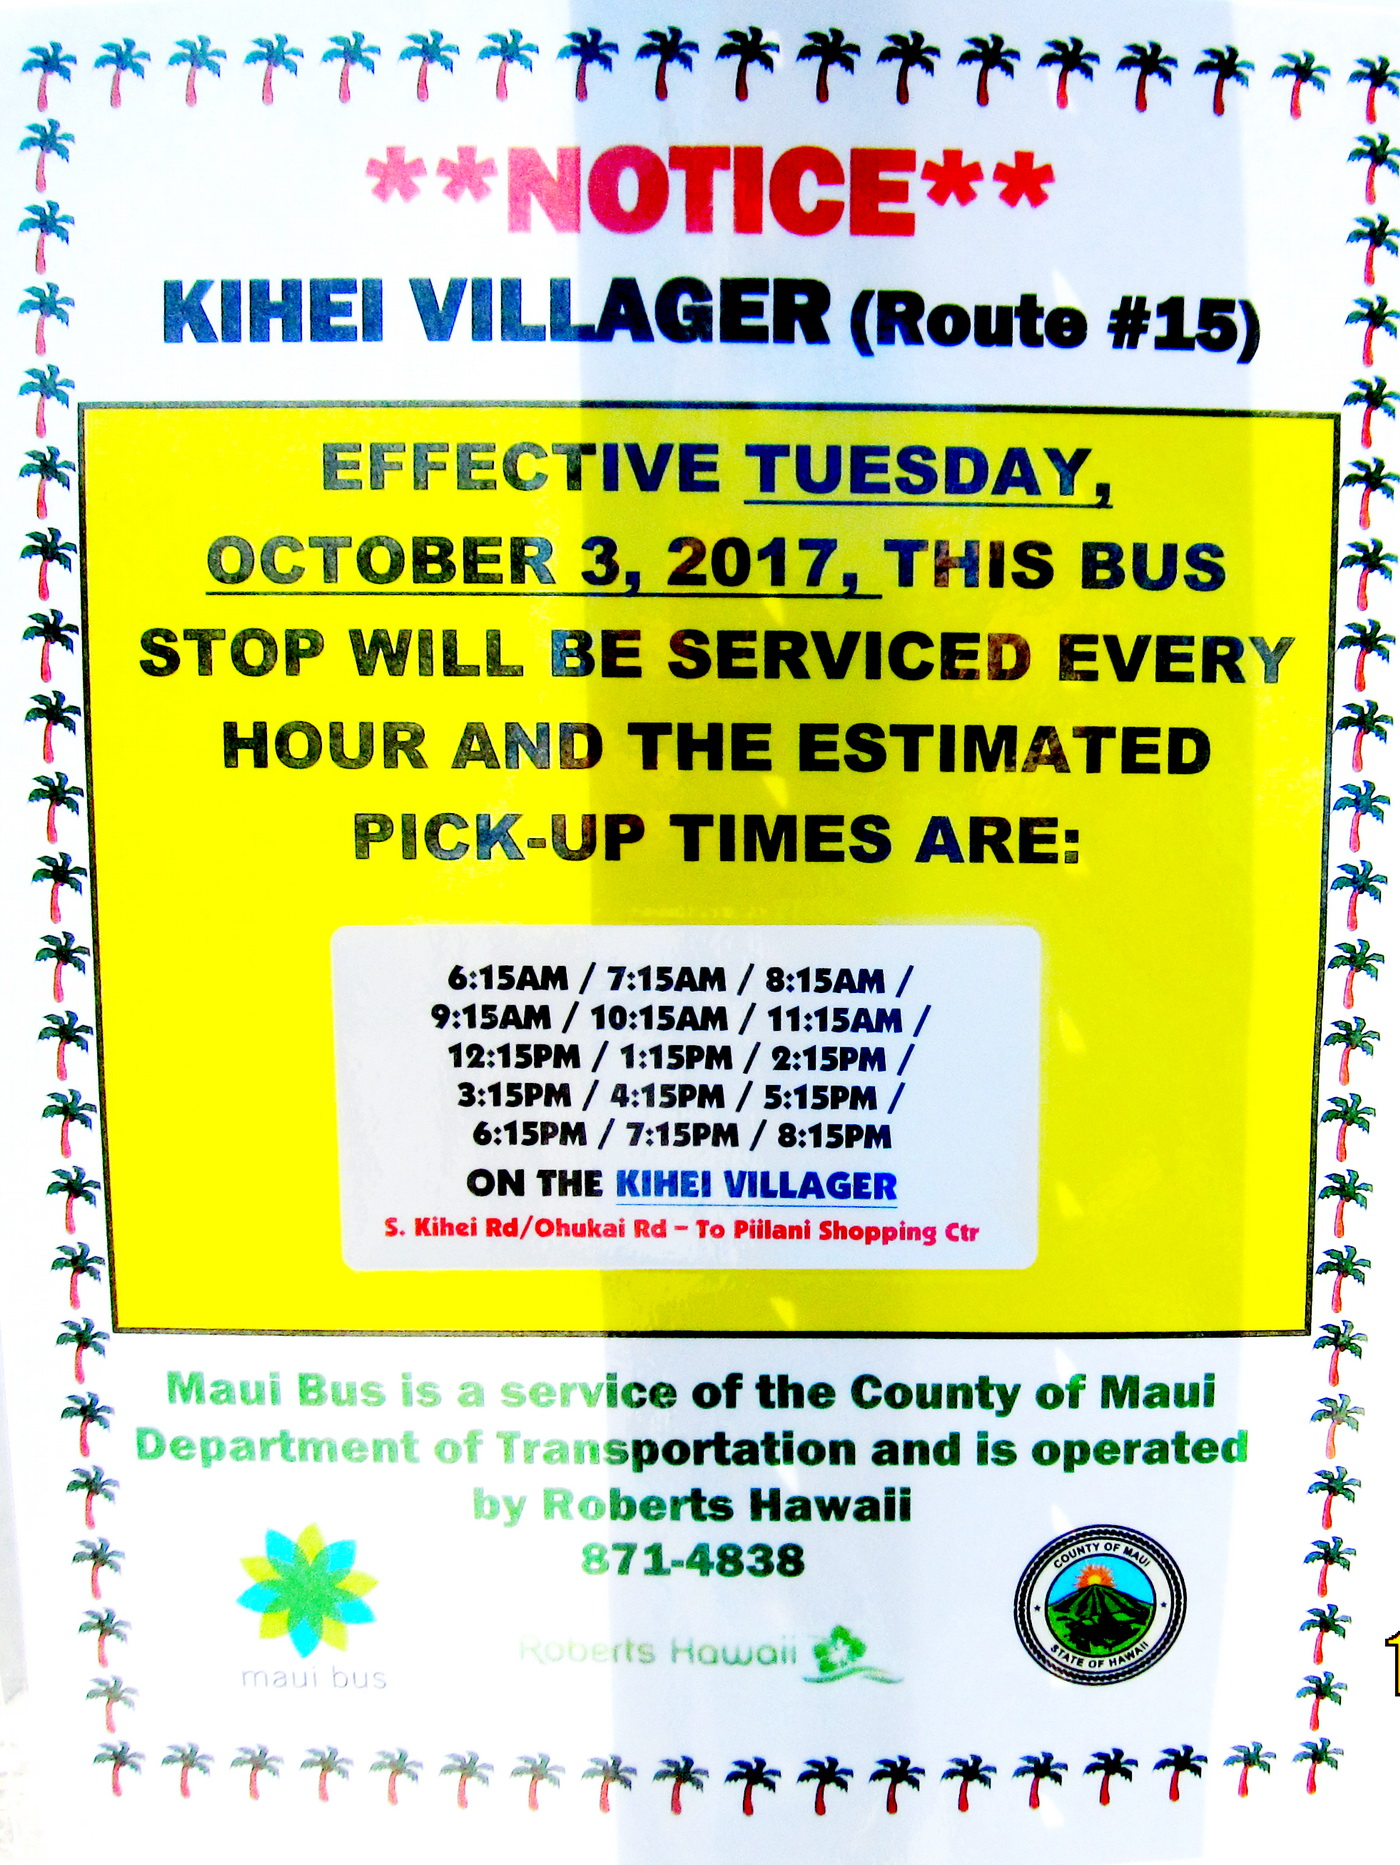 Maui Bus Kihei Villager (Route 15) schedule change starts Tuesday